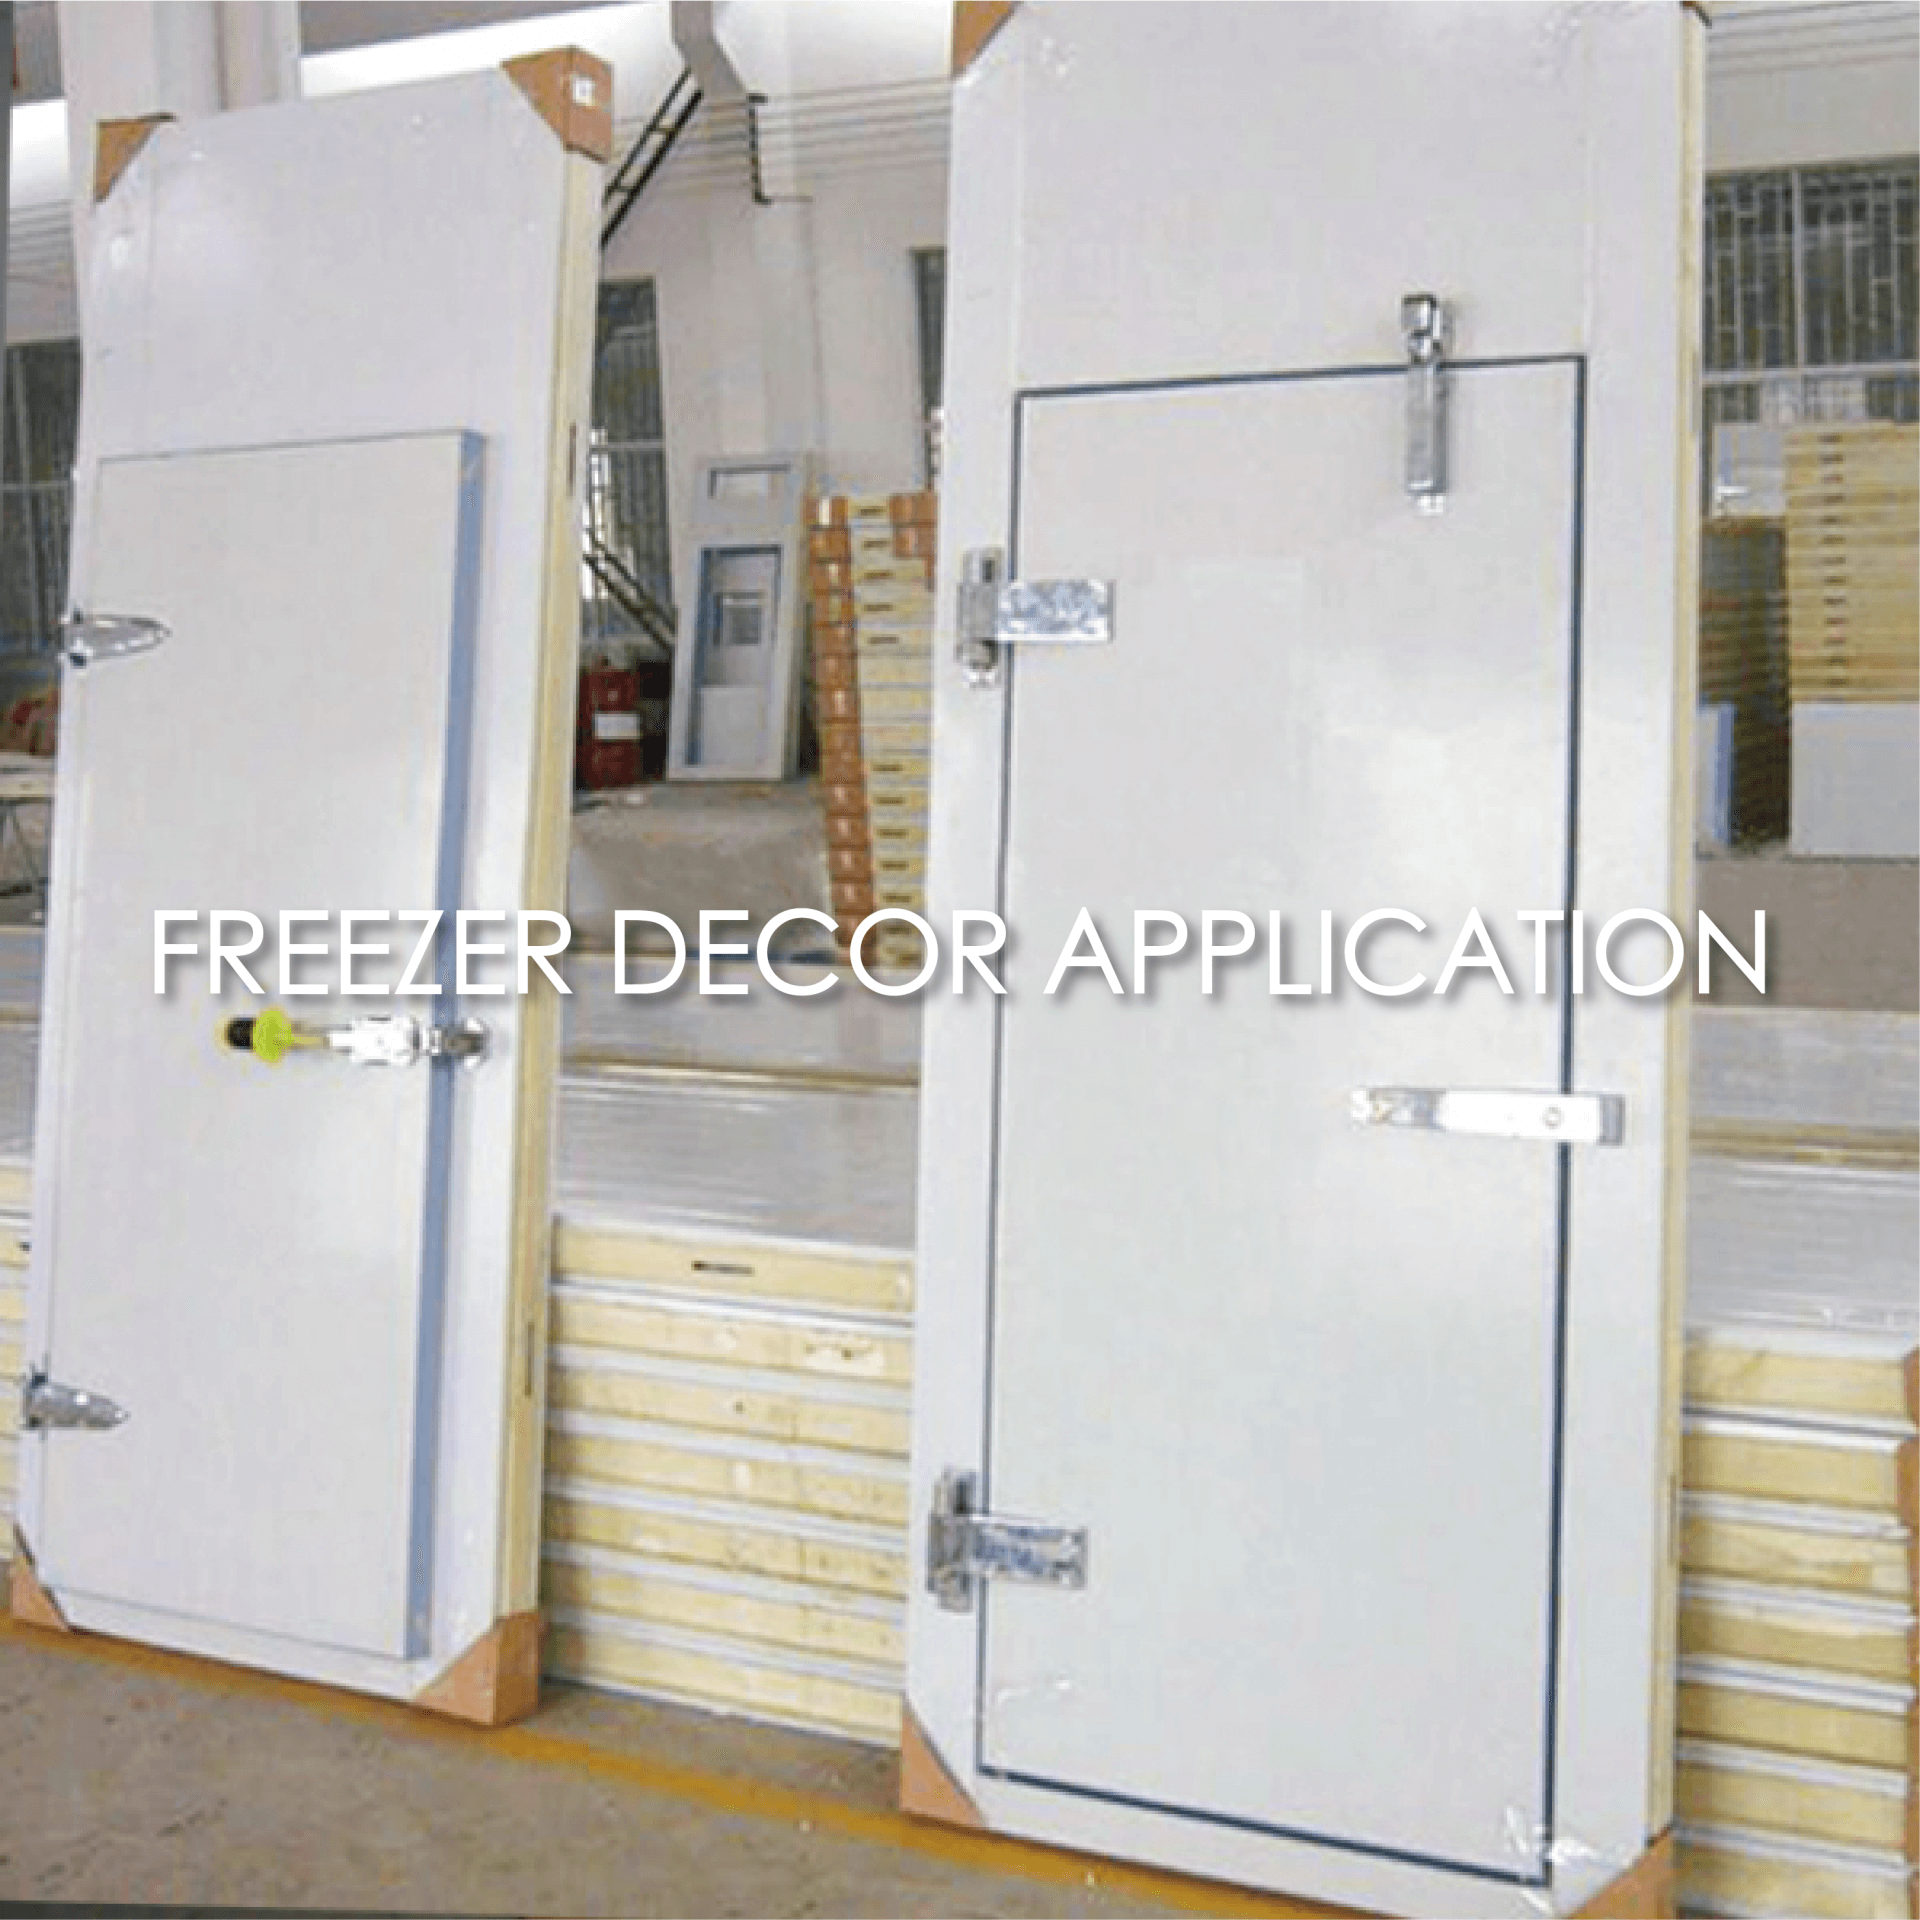 The use of coated metal to make a freezer plate can increase the aesthetics and durability.